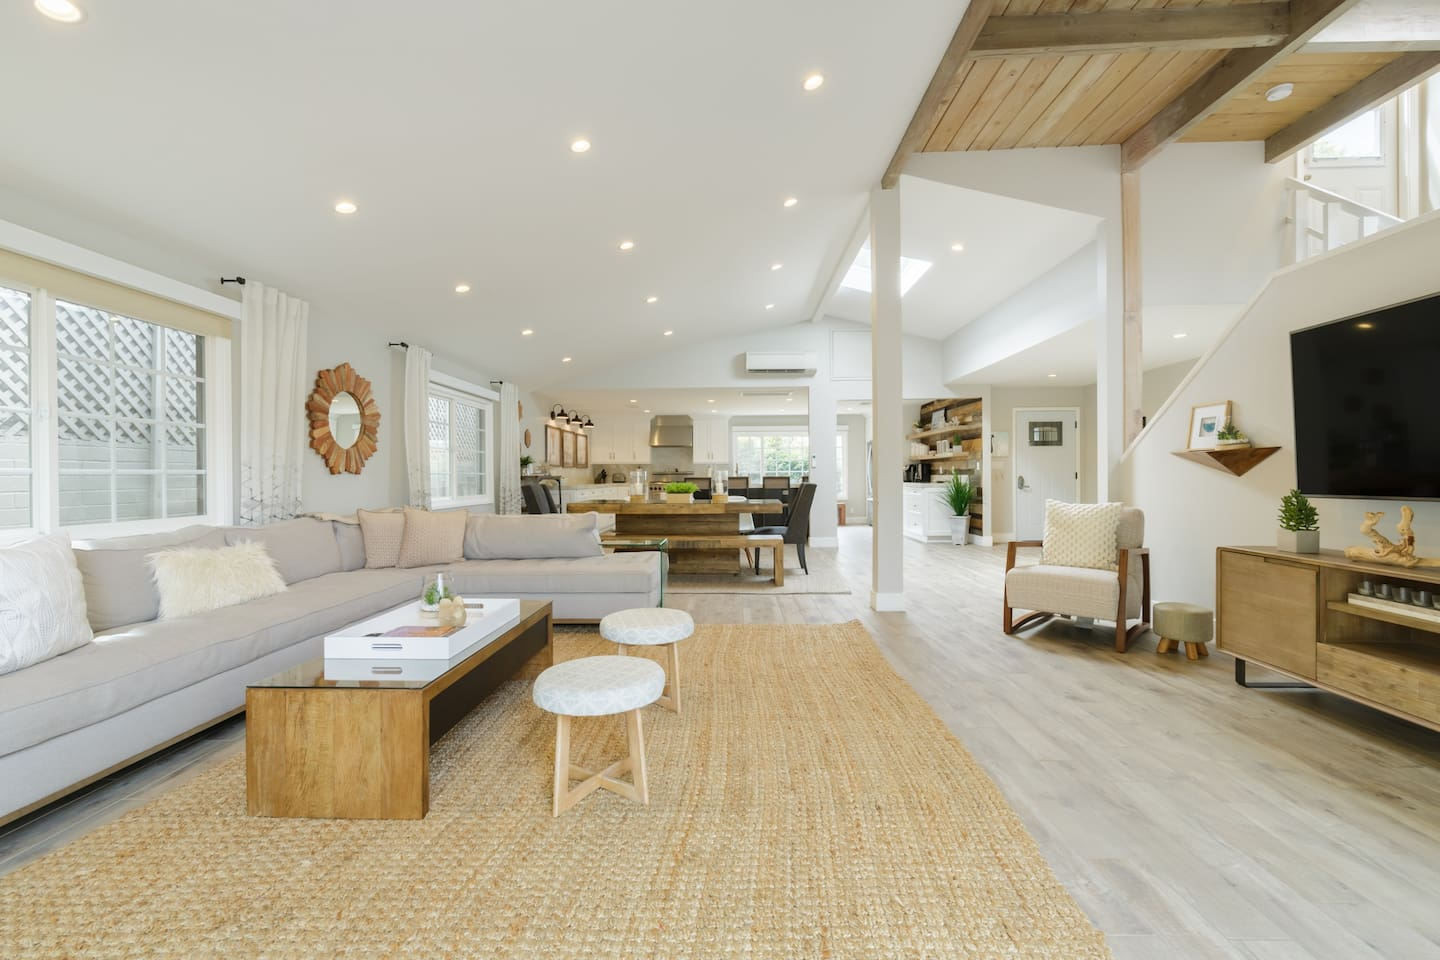 Airbnb LaJolla for Groups